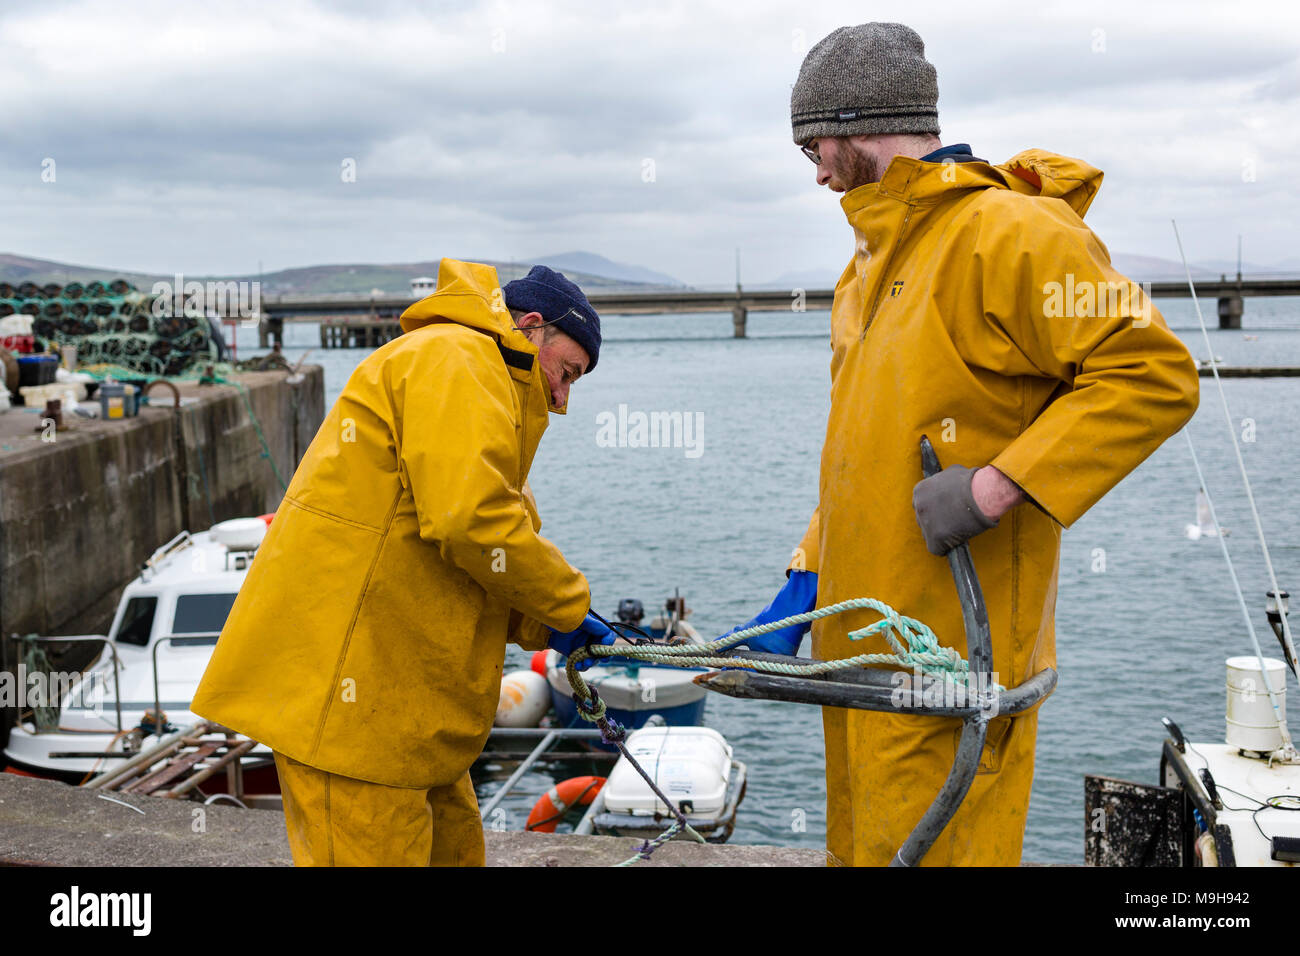 Irish Lobster fisherman preparing for another trip, Portmagee County Kerry, Ireland - Stock Image